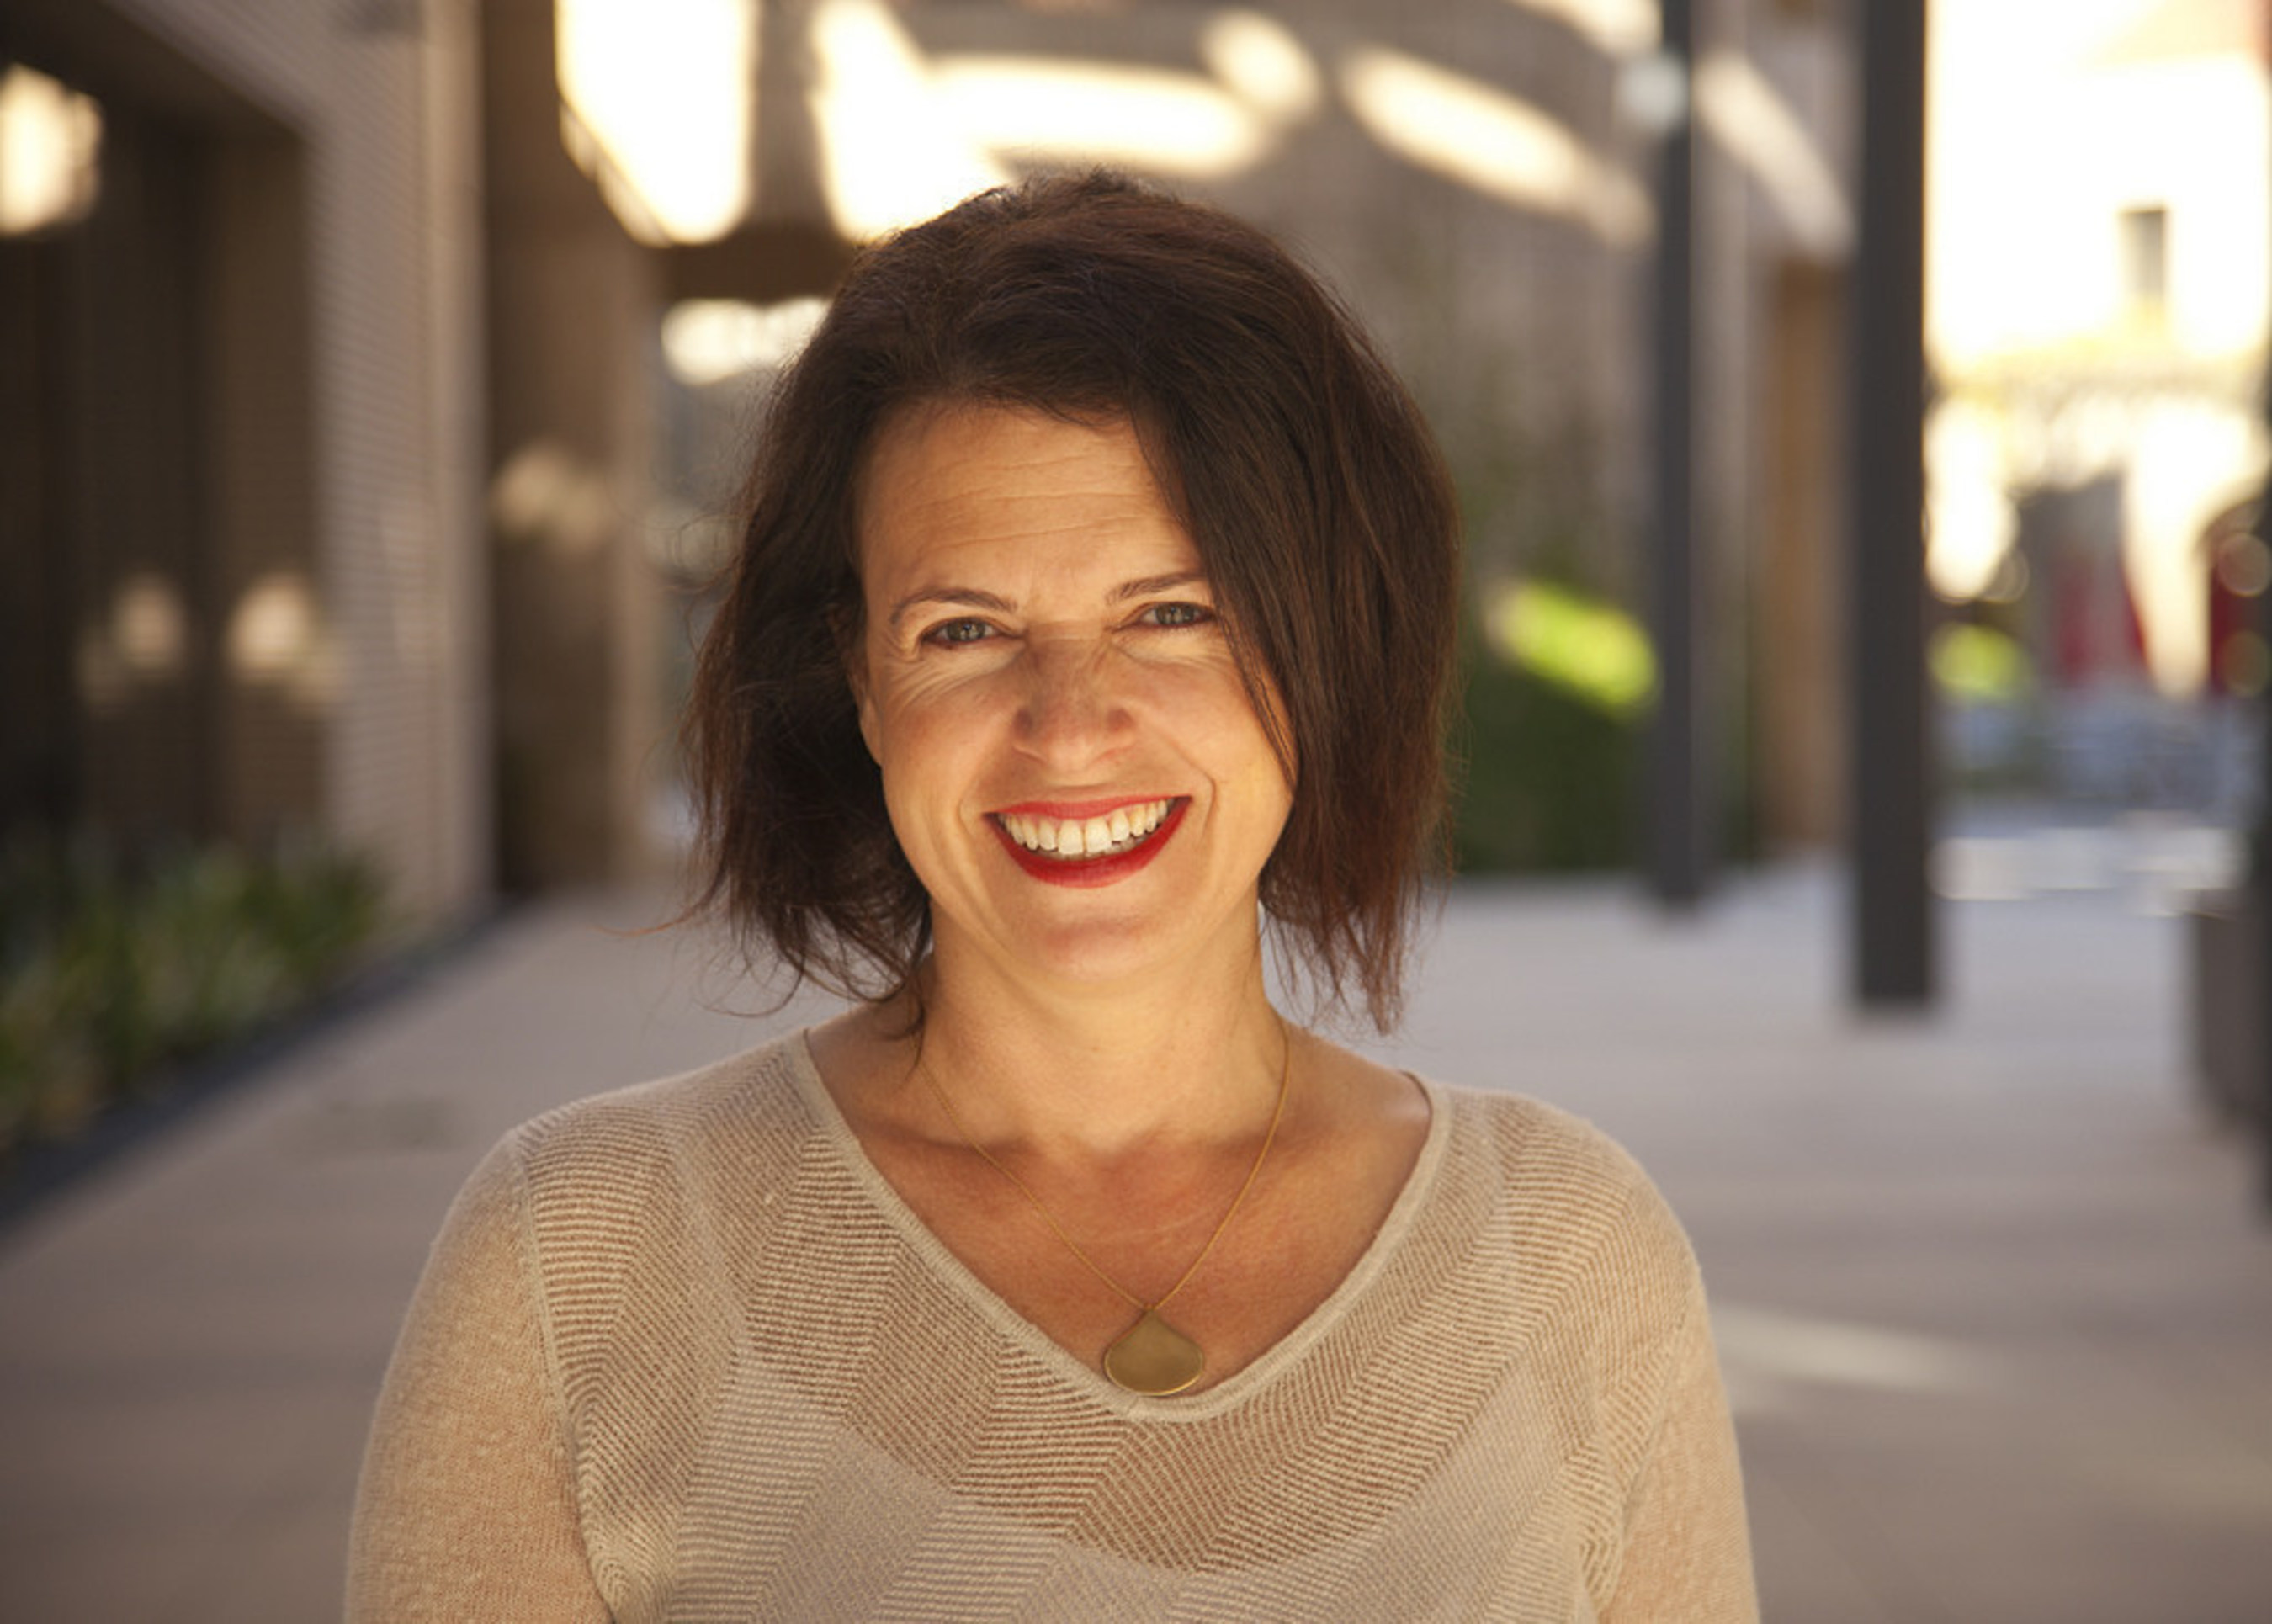 Jennifer Granick, Director of Civil Liberties at the Stanford Center for Internet and Society, to keynote Black Hat USA 2015